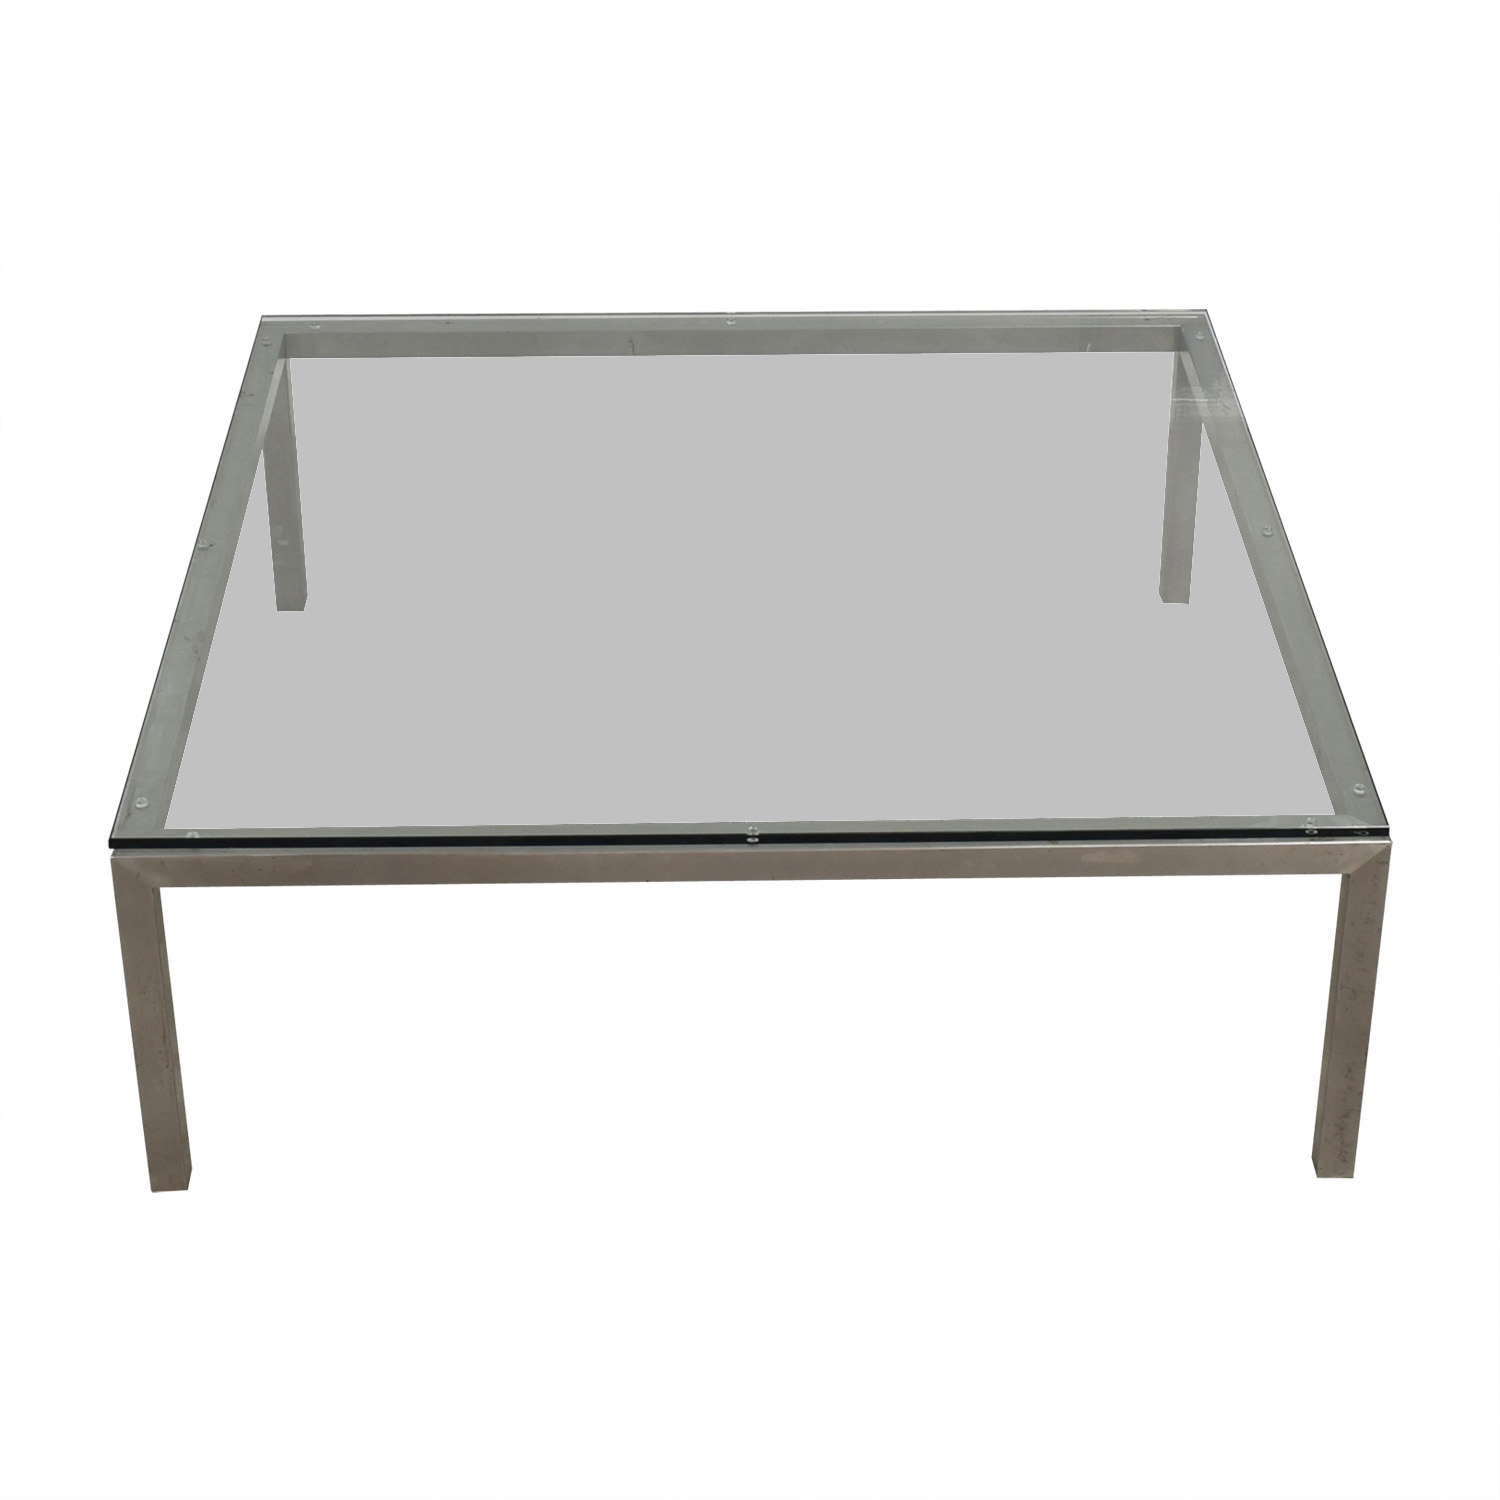 shop Room & Board Room & Board Portica Glass Top Coffee Table online